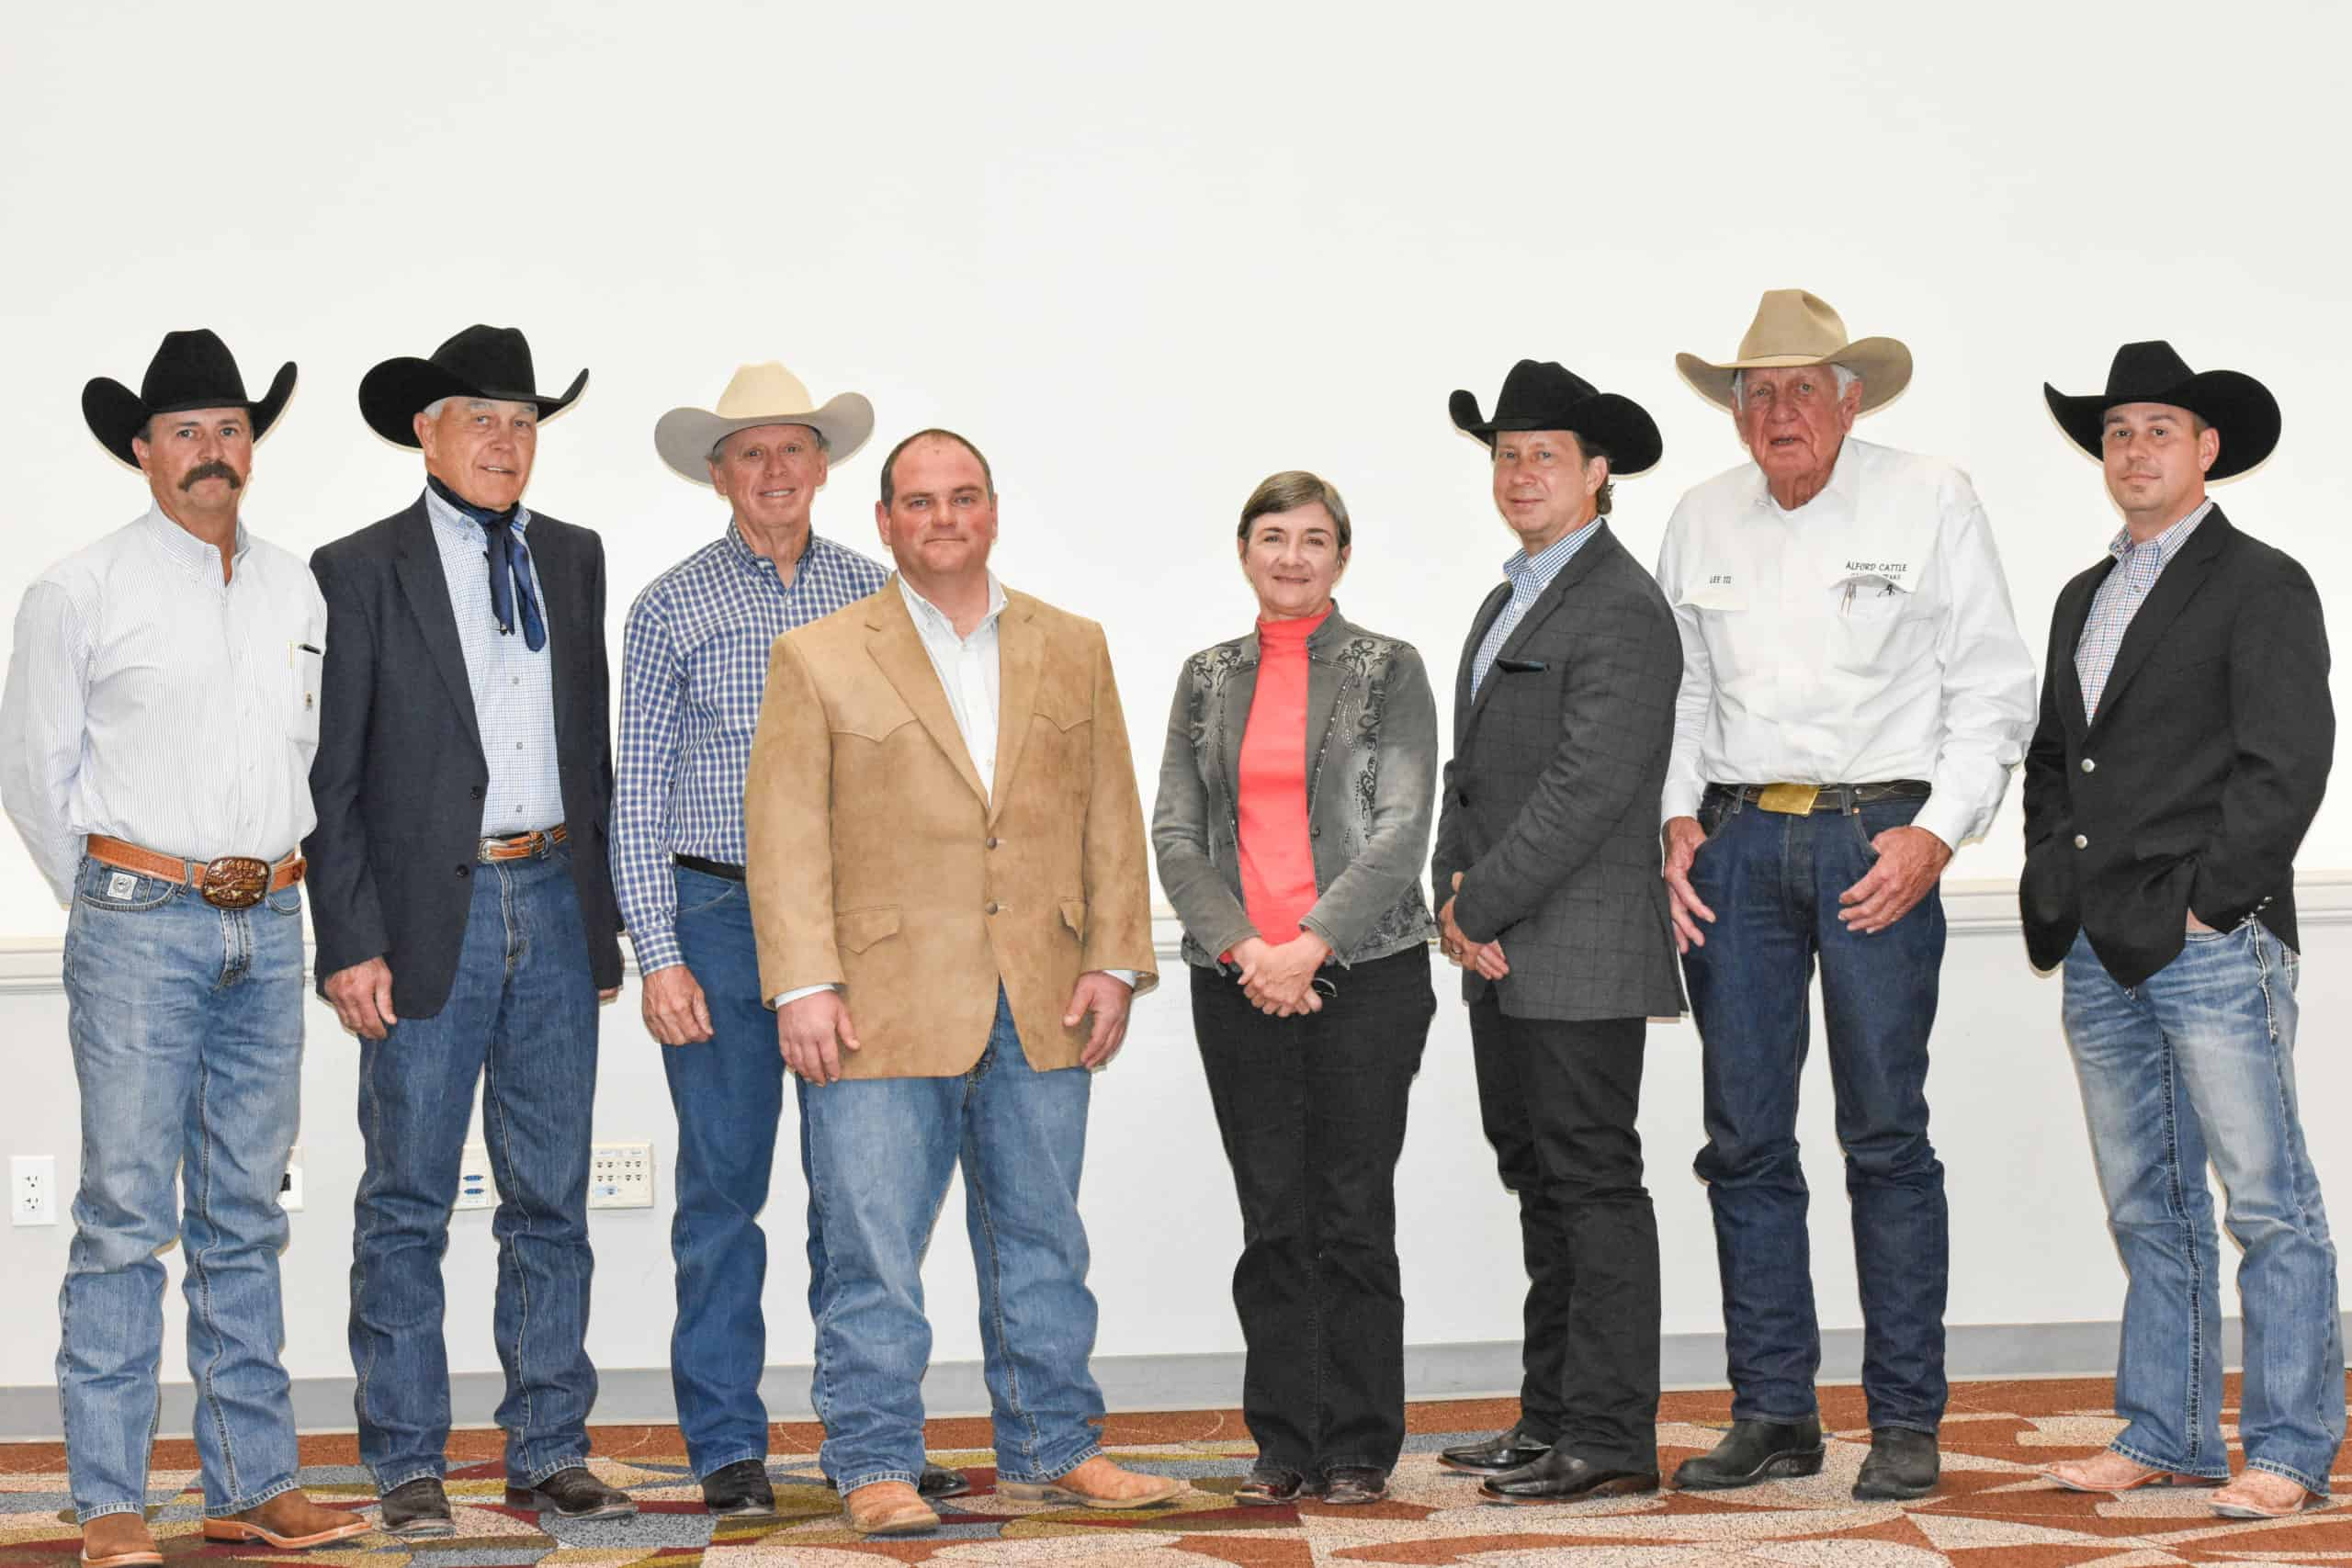 Left to Right: Rob Singleton, Vern Suhn, Mike Weathers, Jeremy Jackson, Mary Douglass, Allen Goode, Lee Alford, Shiloh Hall(Not Pictured: Chris Heptinstall, Greg Romans, Dr. Randy Schmidt, Trey Cuevas, Troy Floyd)